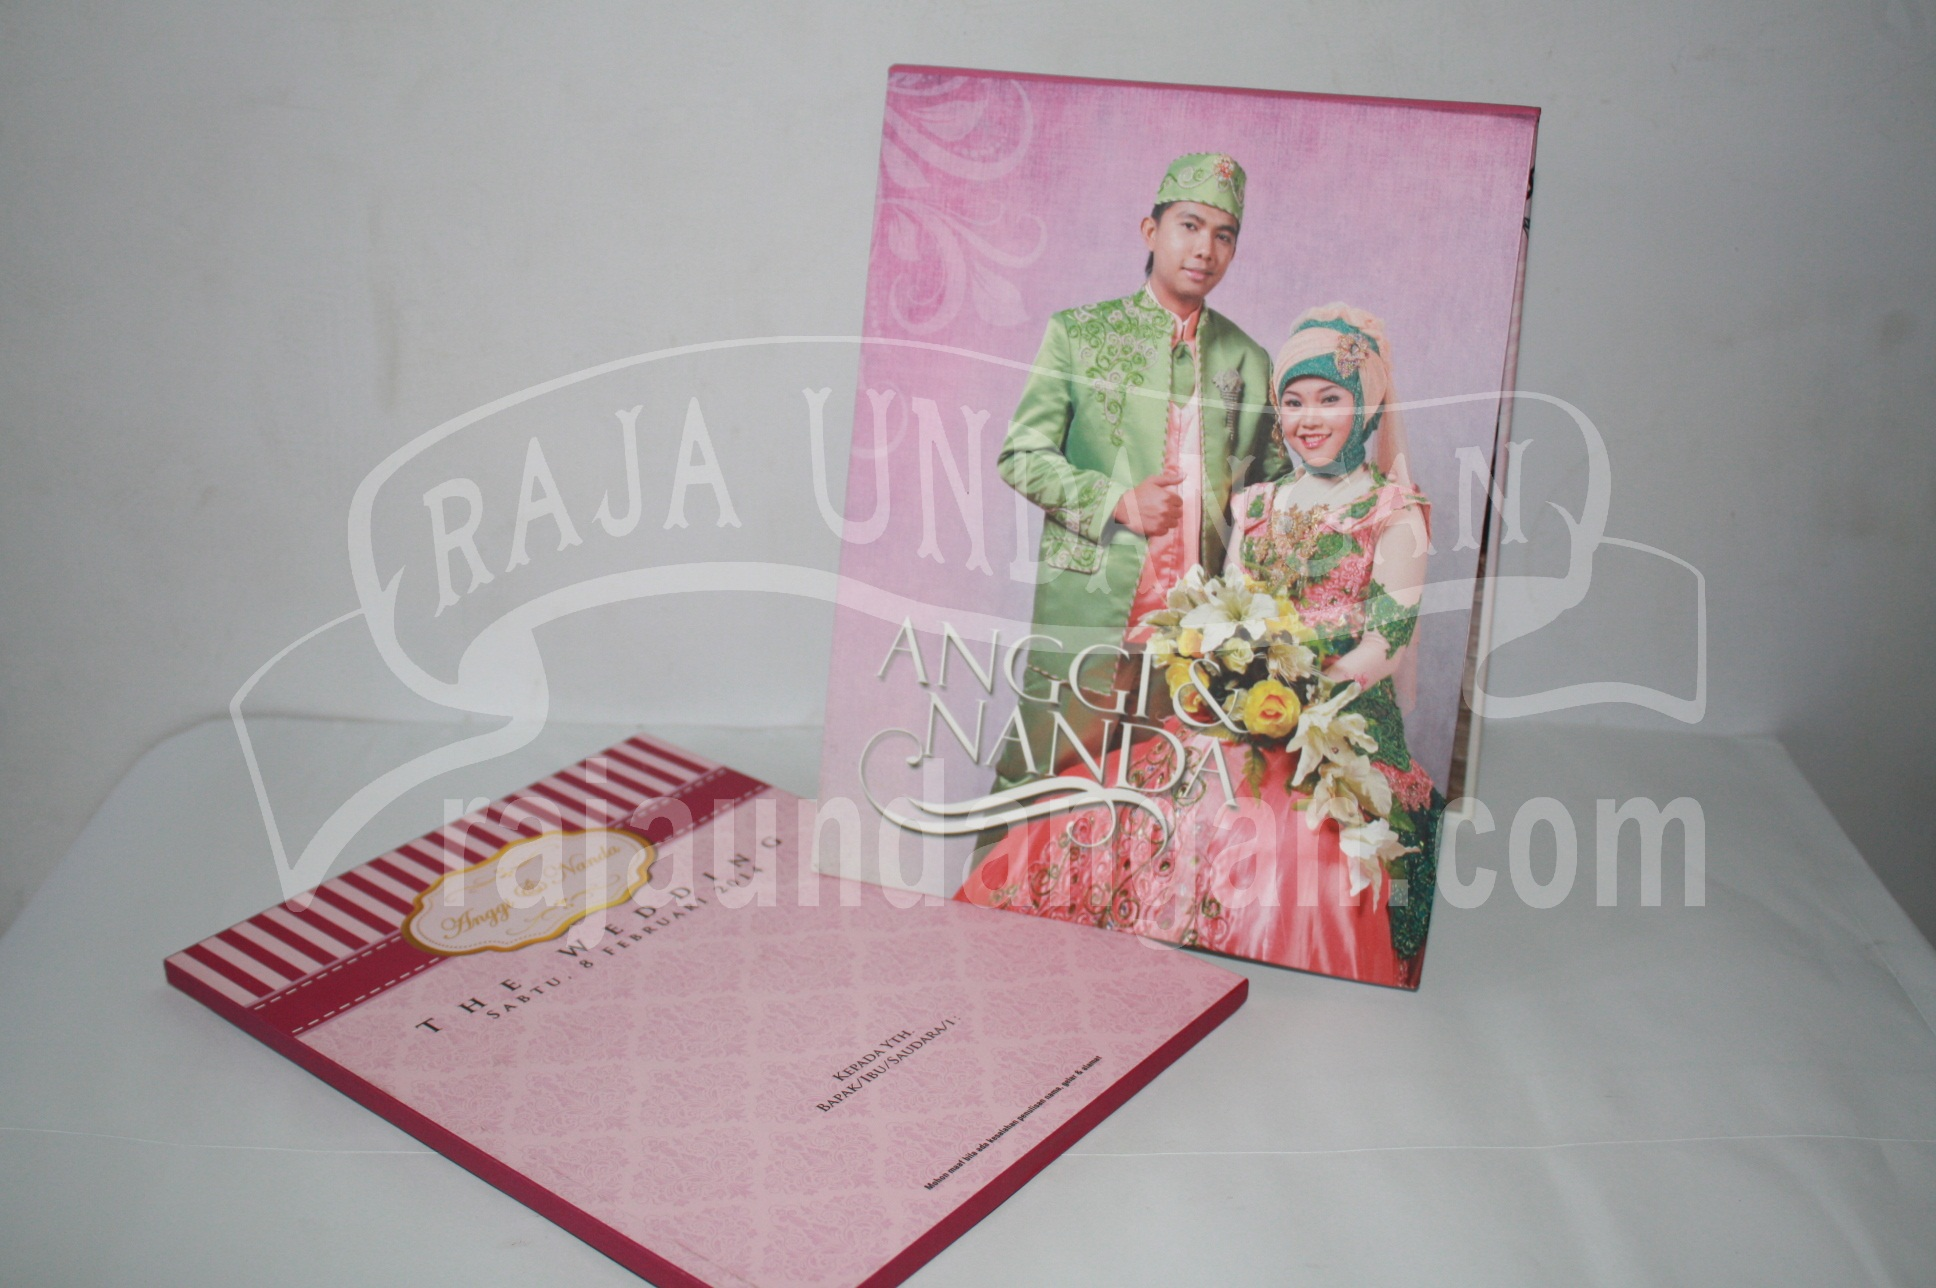 Undangan Pernikahan Hardcover Pop Up Pakai Amplop Anggi dan Nanda EDC 521 - Percetakan Wedding Invitations Eksklusif di Dukuh Setro